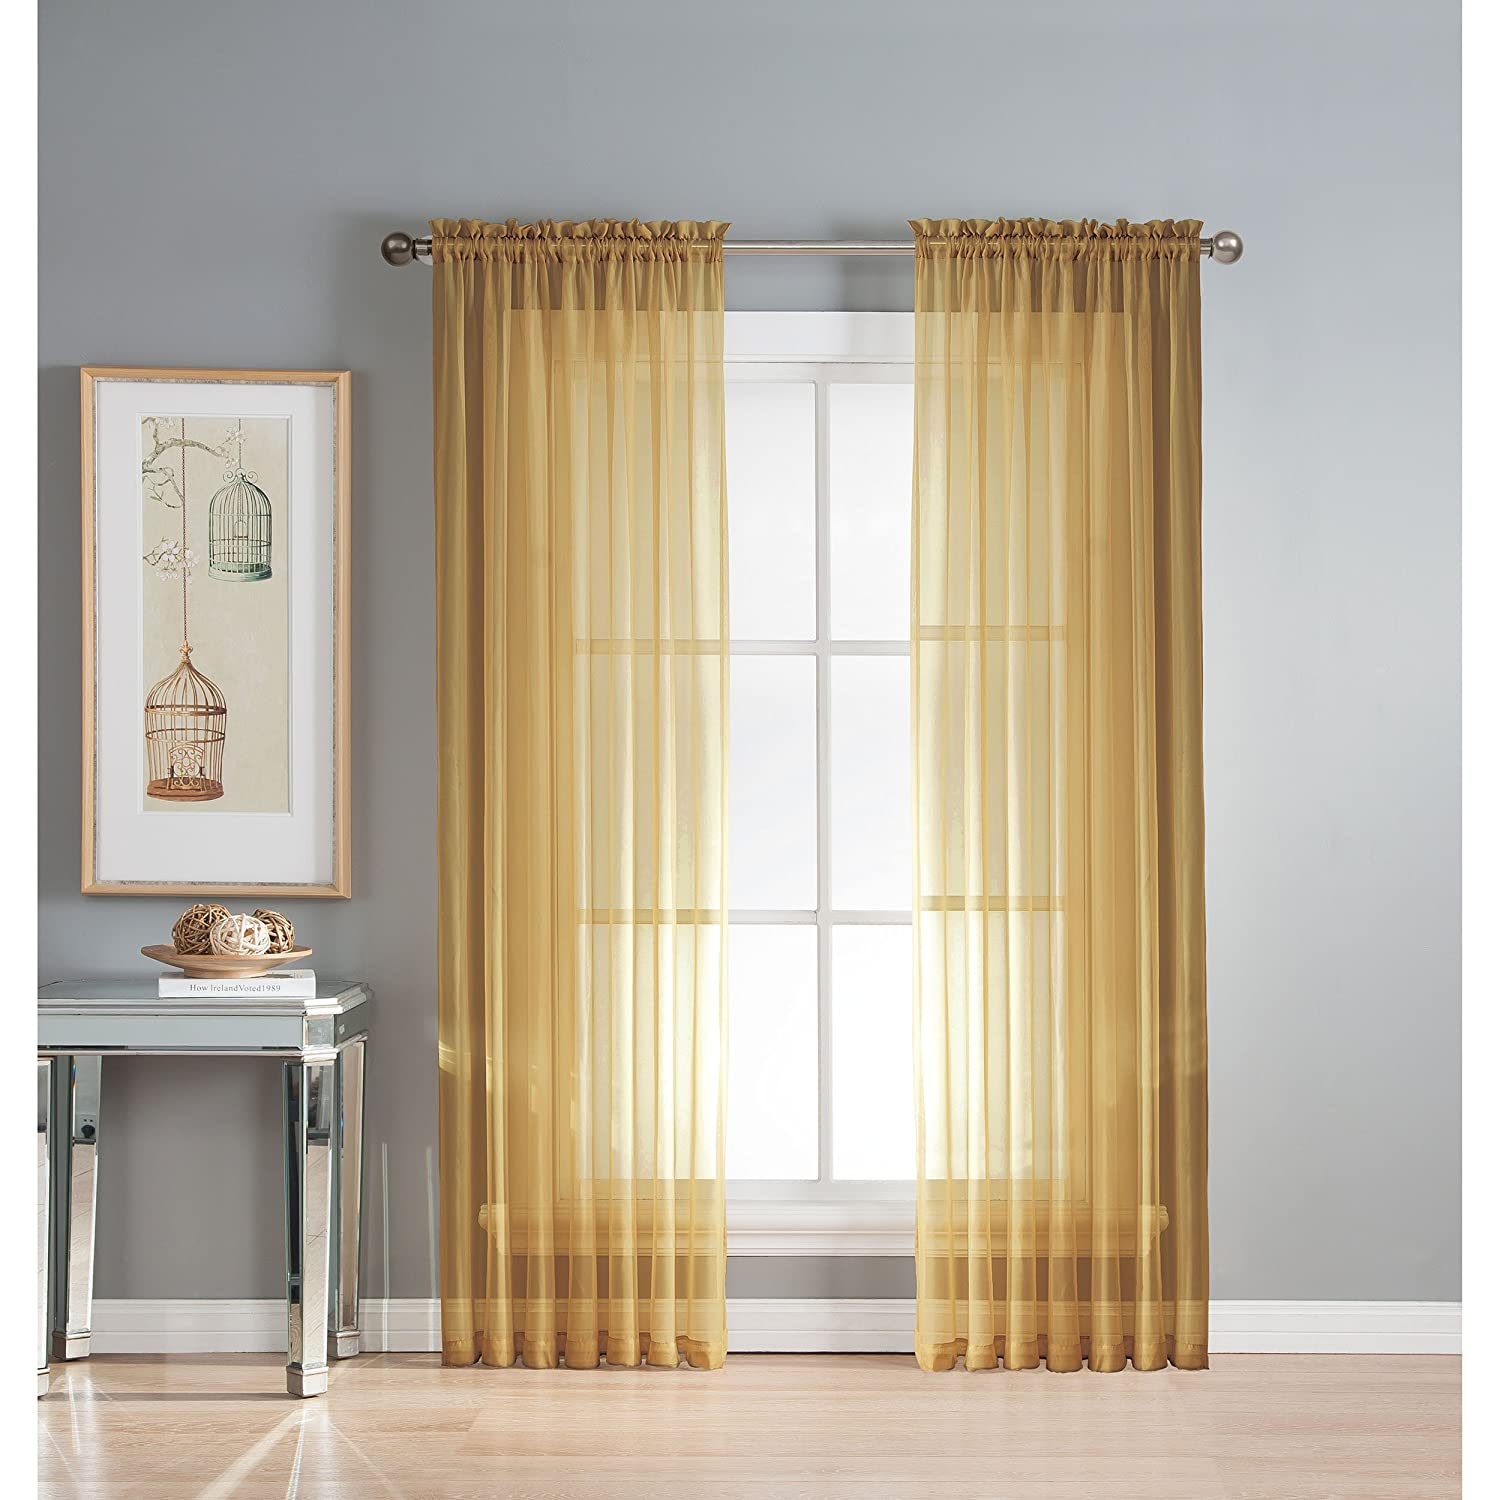 Window Elements Diamond Sheer Voile Extra Wide 112 x 84 in. Rod Pocket Curtain Panel Pair, Aqua Creative Home Ideas YMC003080